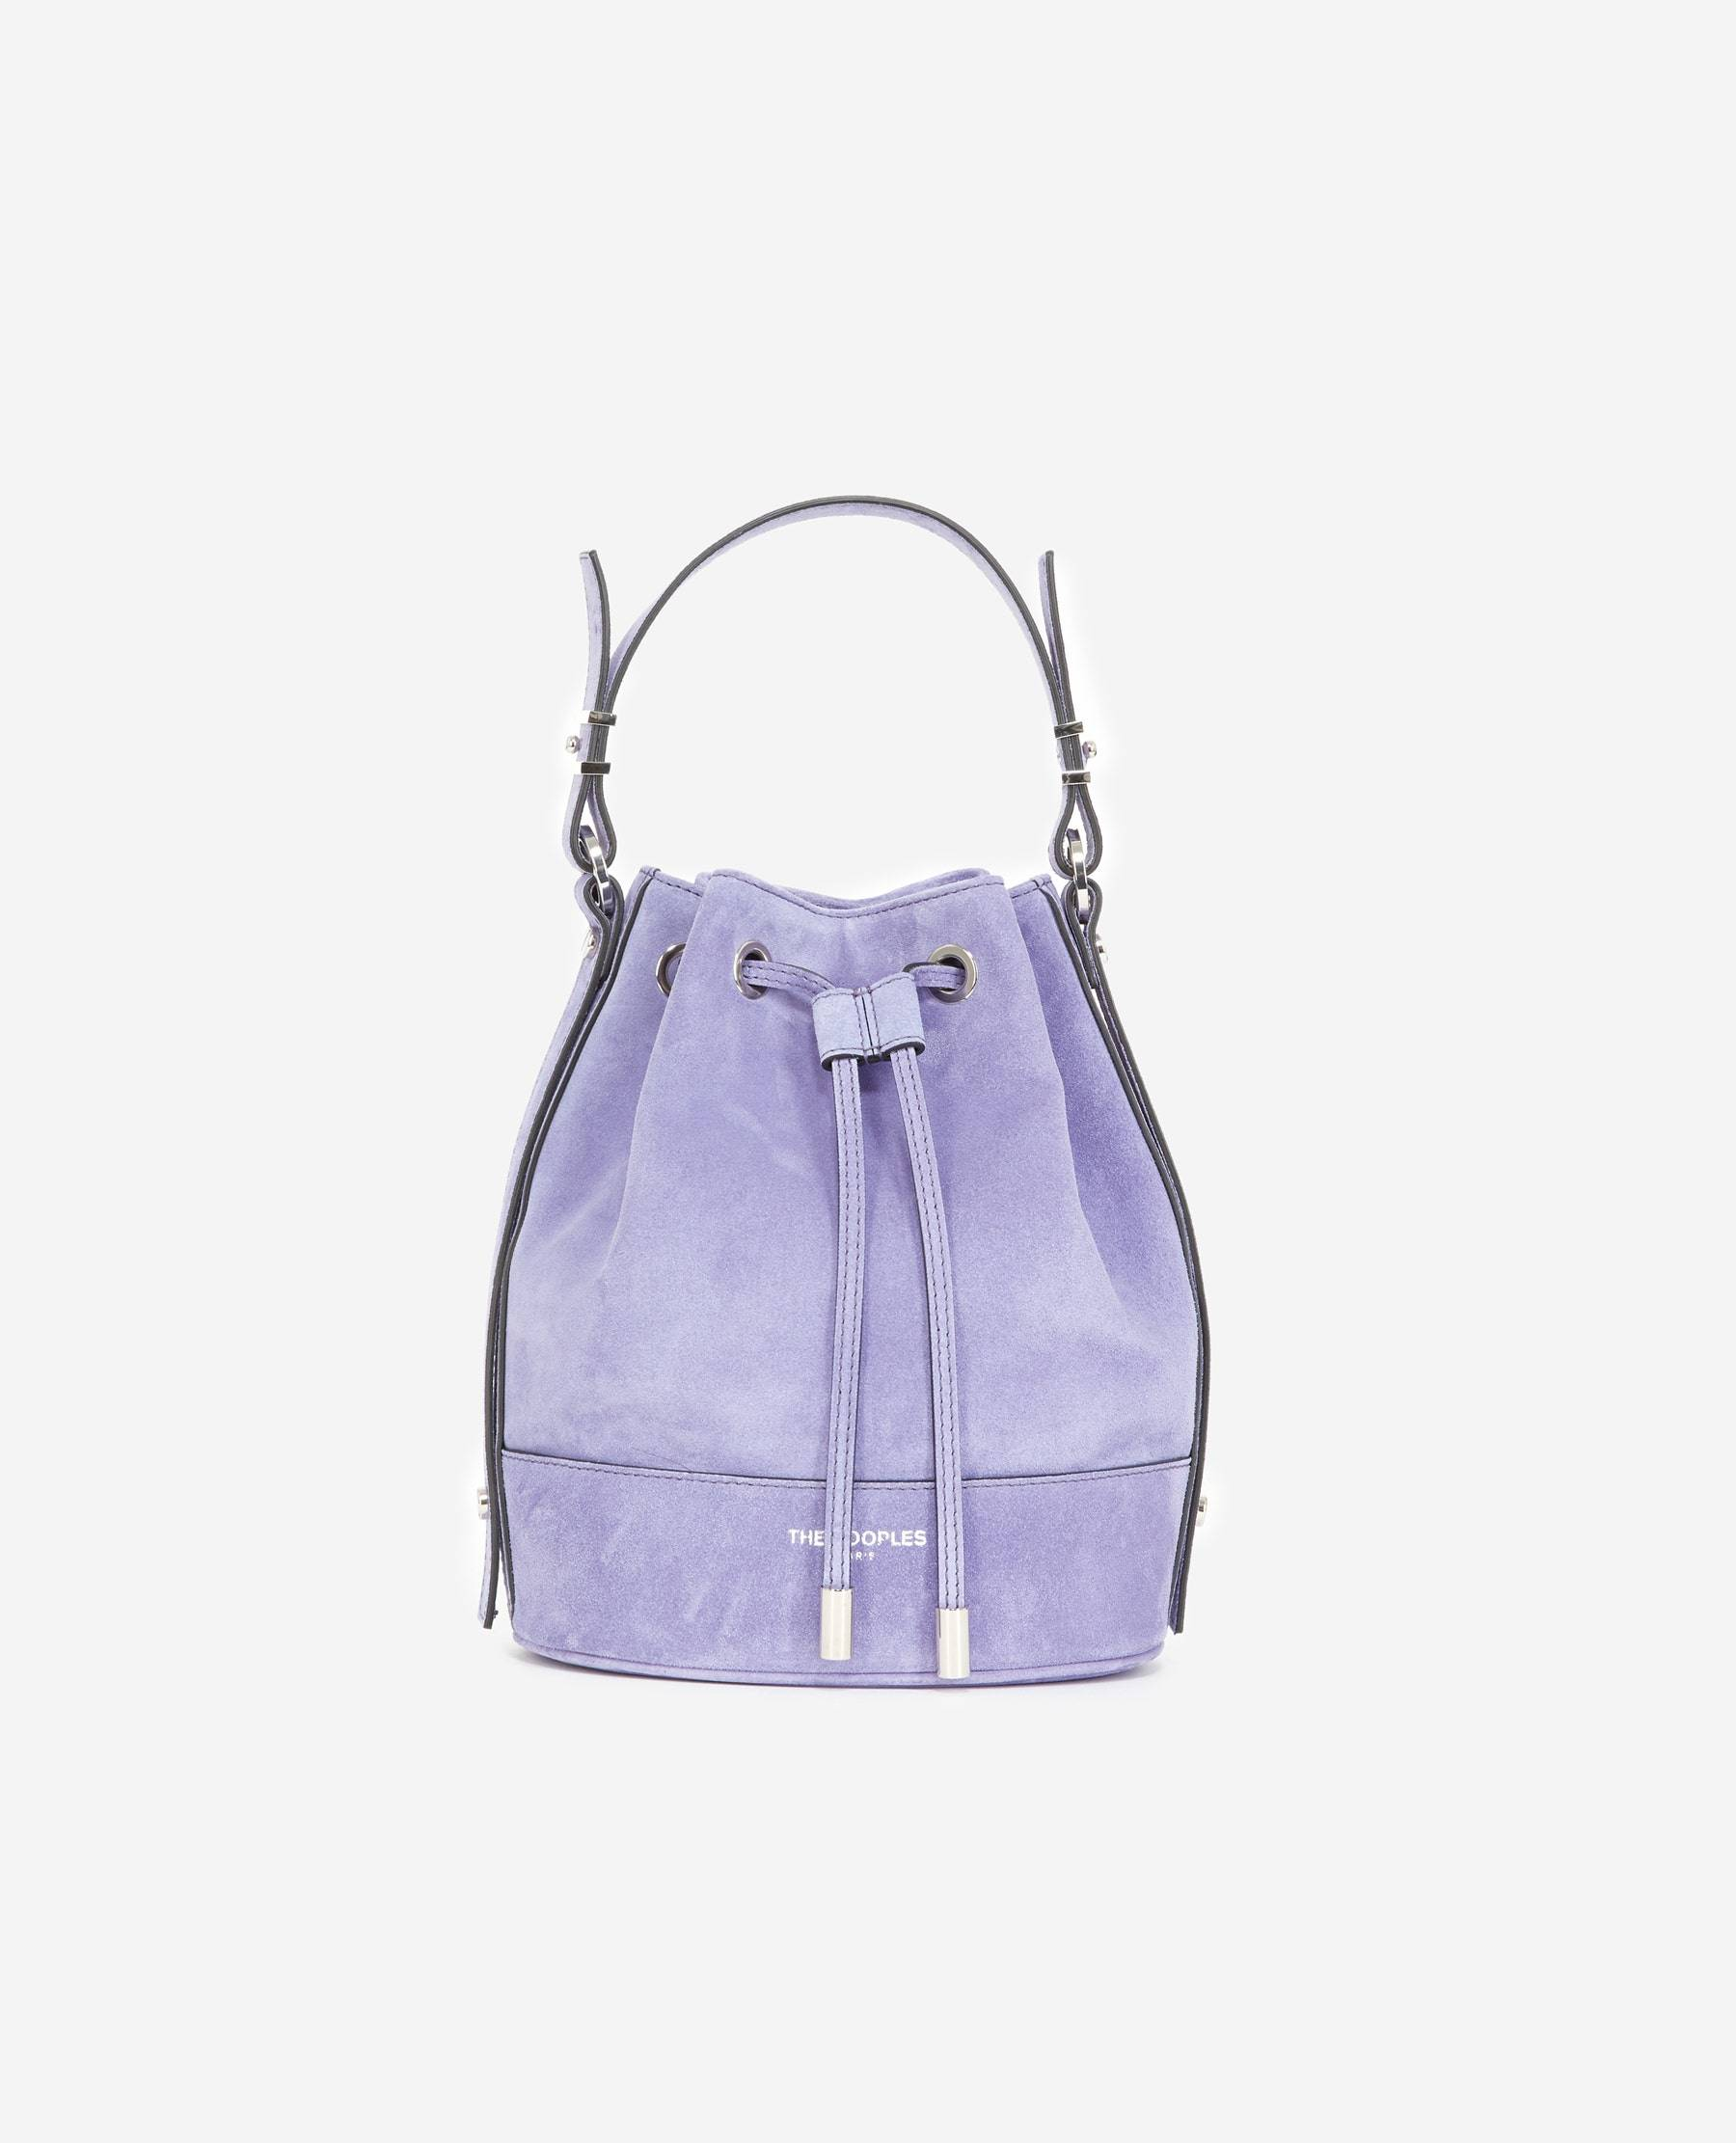 The Kooples - Sac Medium Tina daim lilas - FEMME Taille Unique